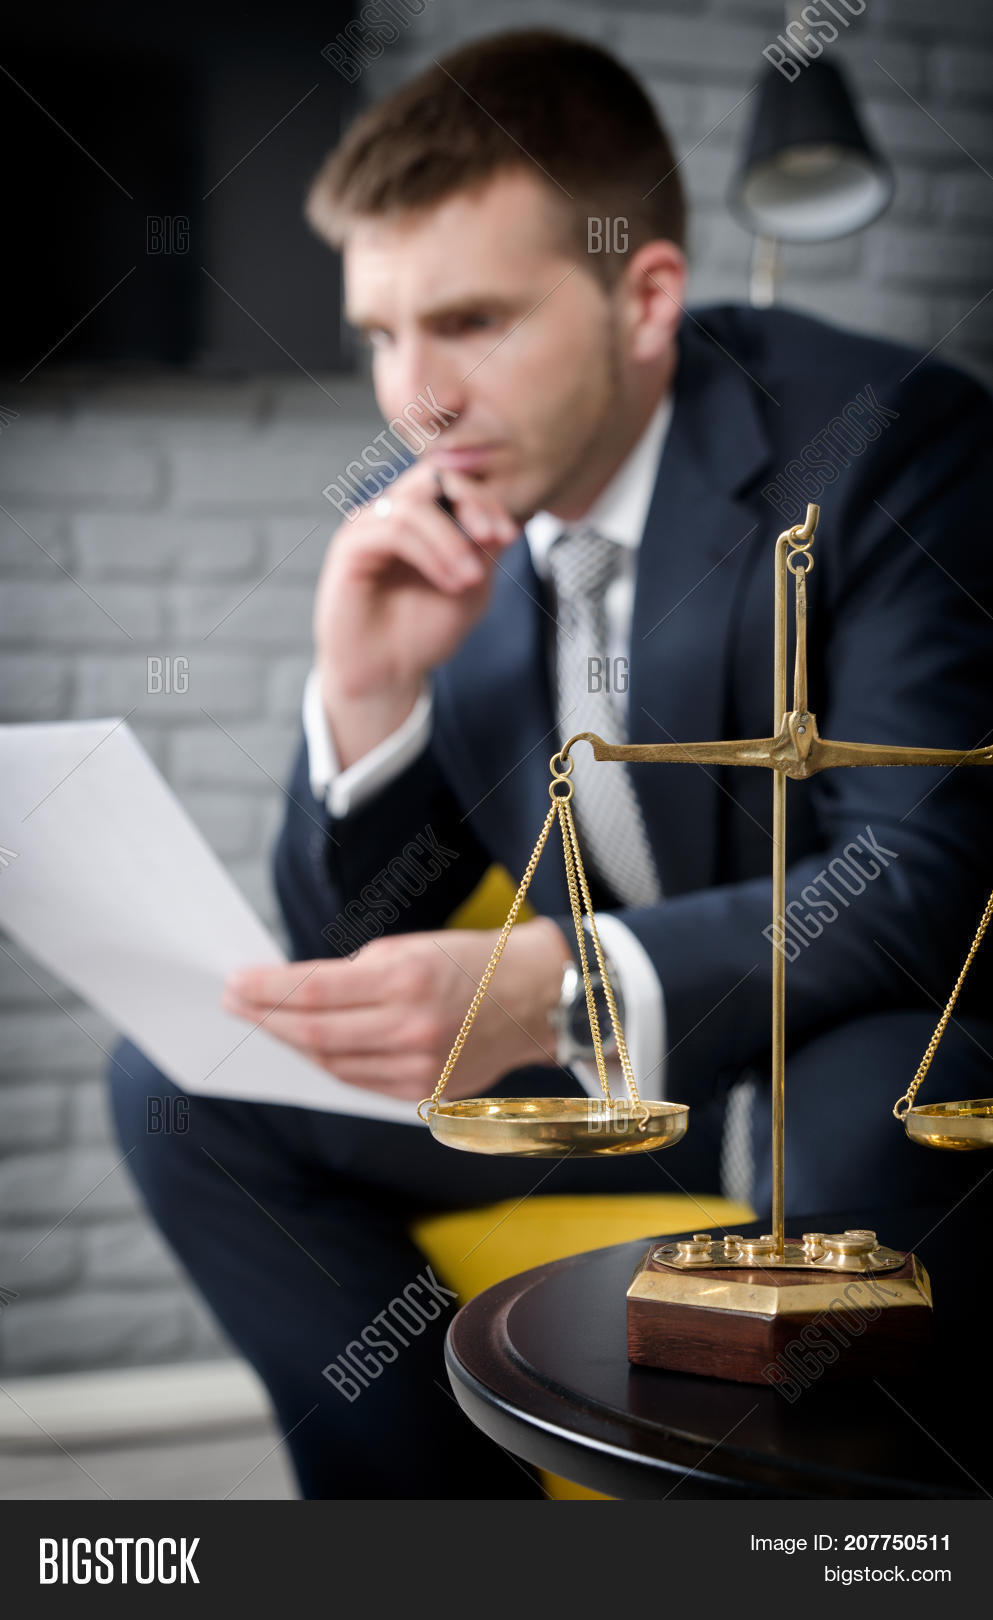 agreement,armchair,attorney,authority,background,balance,blur,business,career,concept,court,courthouse,crime,criminal,document,expertise,indoor,judge,judgment,jurist,justice,law,lawyer,legal,legislation,litigation,magistrate,male,man,modern,notary,occupation,office,pen,person,professional,reading,right,scales,sheet,sitting,suit,symbol,system,table,tie,verdict,weight,work,write